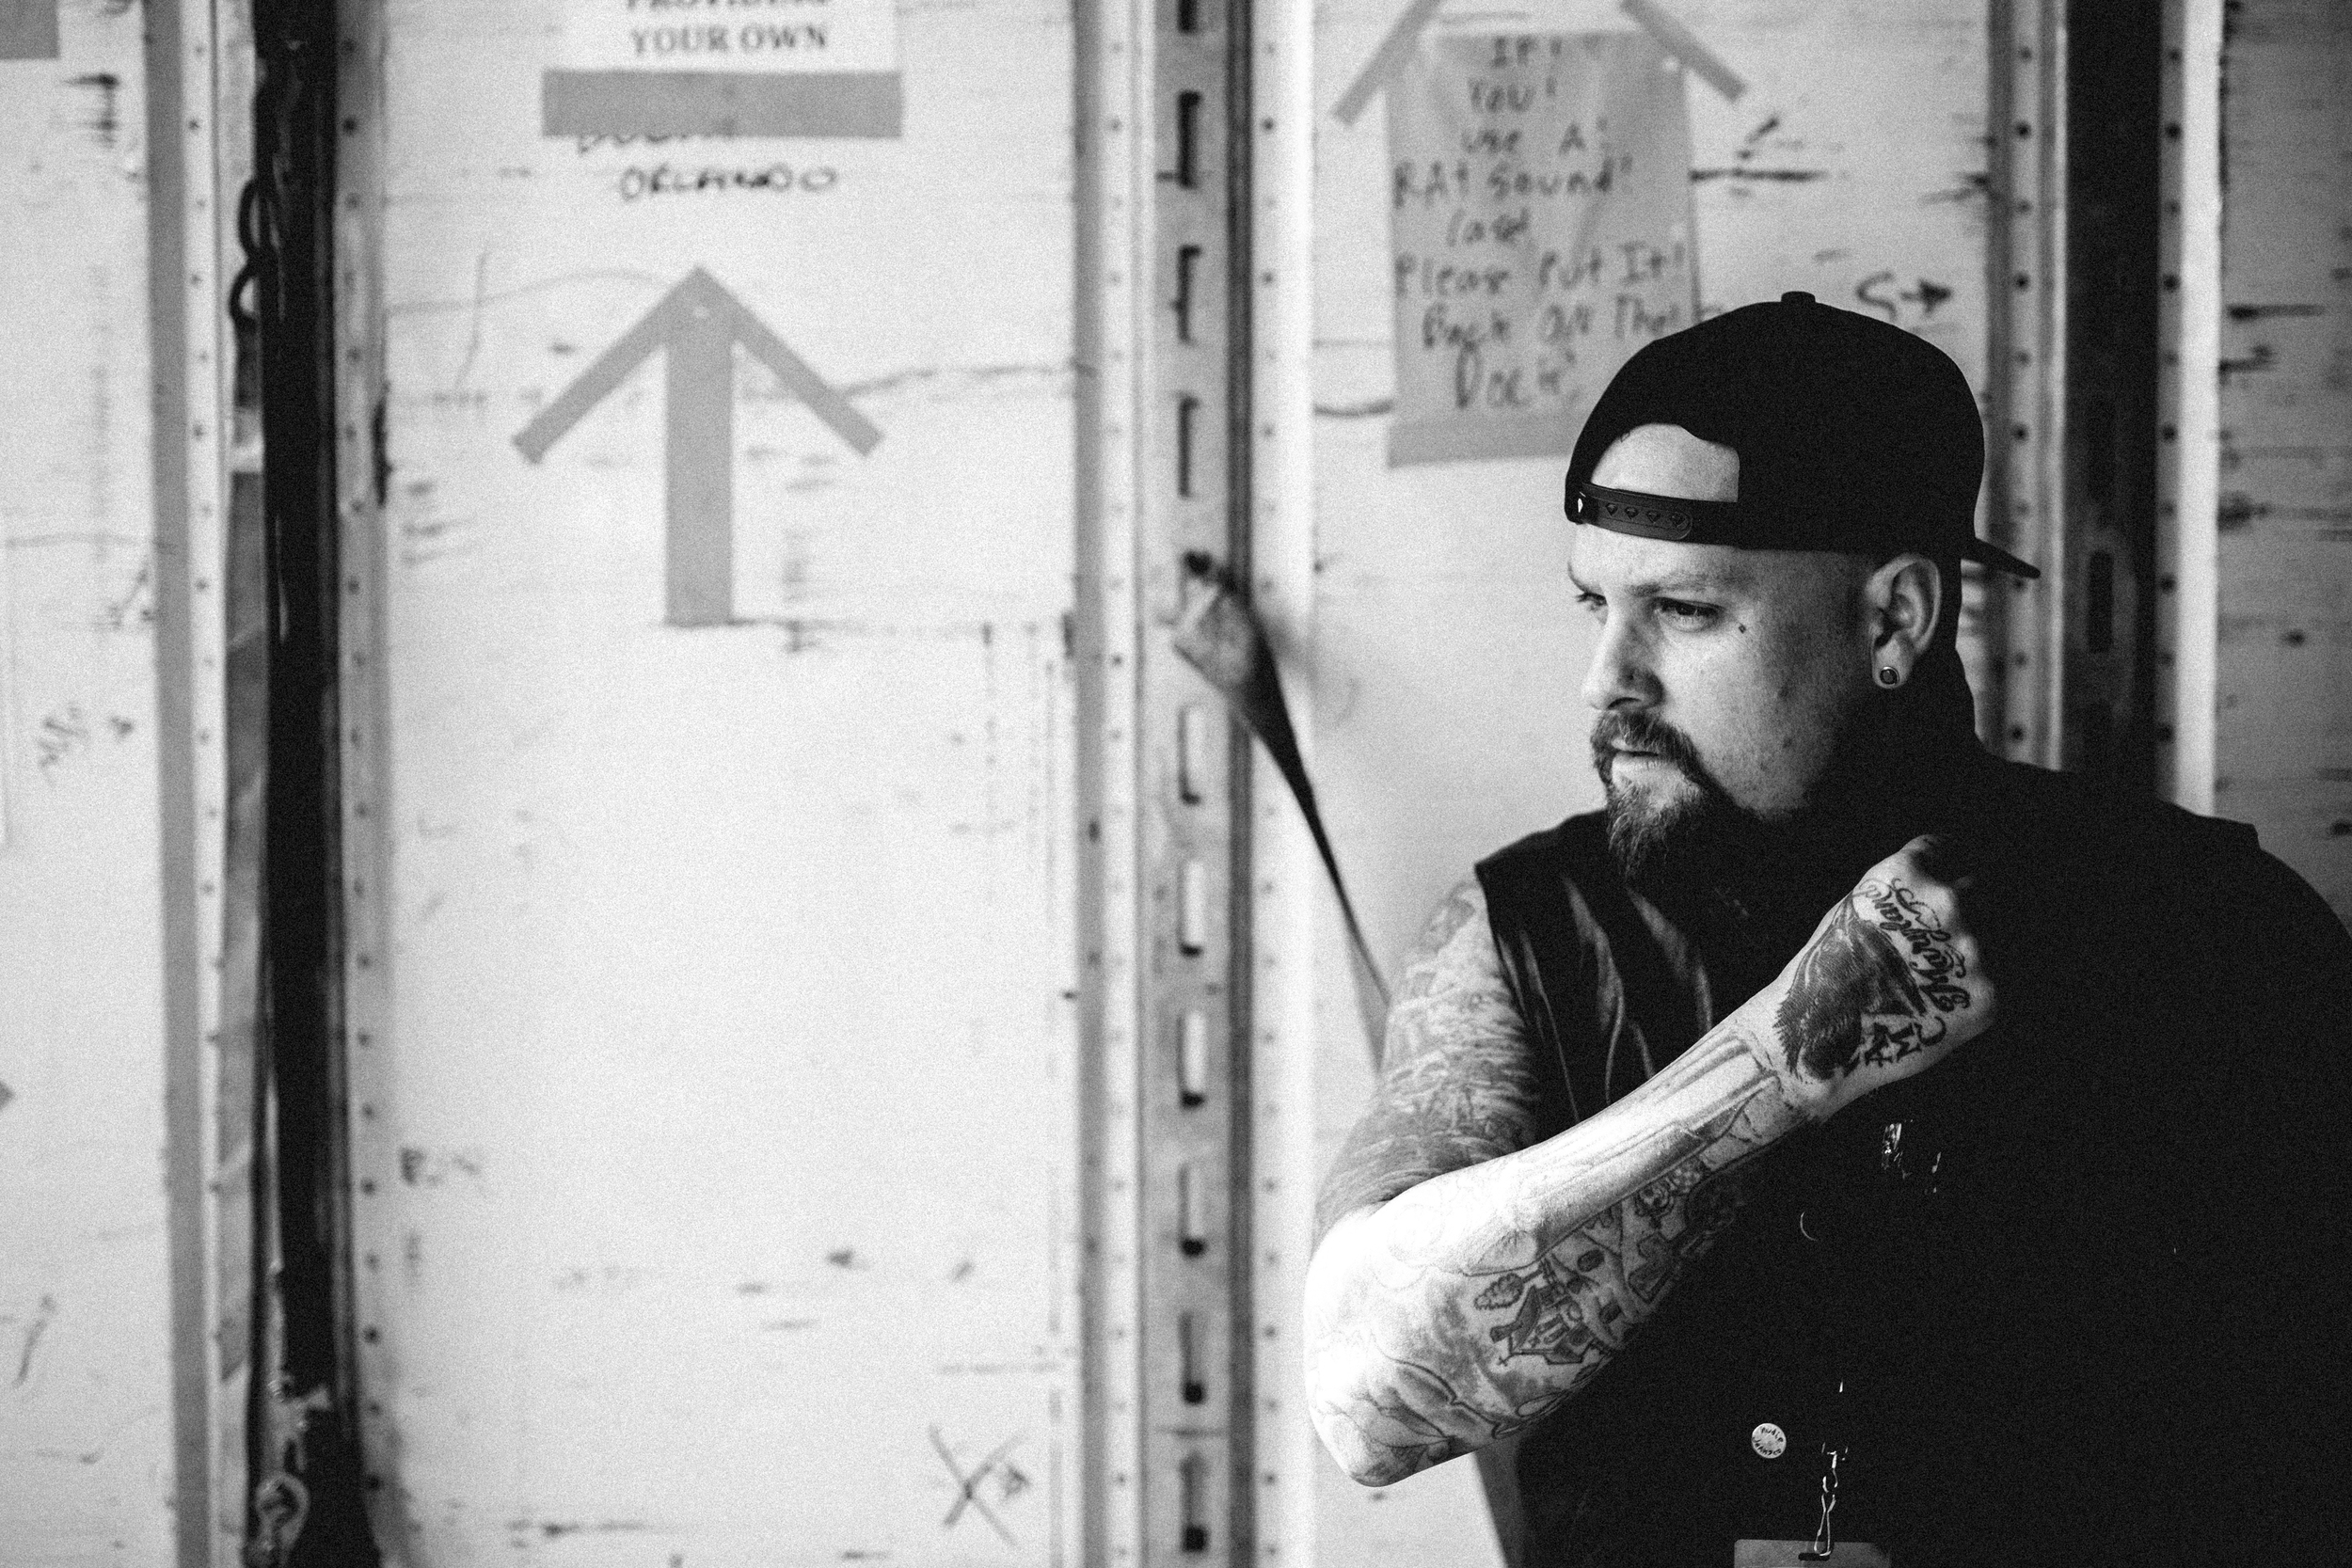 Noblesville, IN . A sneaky portrait of  Benji Madden of Good Charlotte.  I love being the eyes behind the scenes.